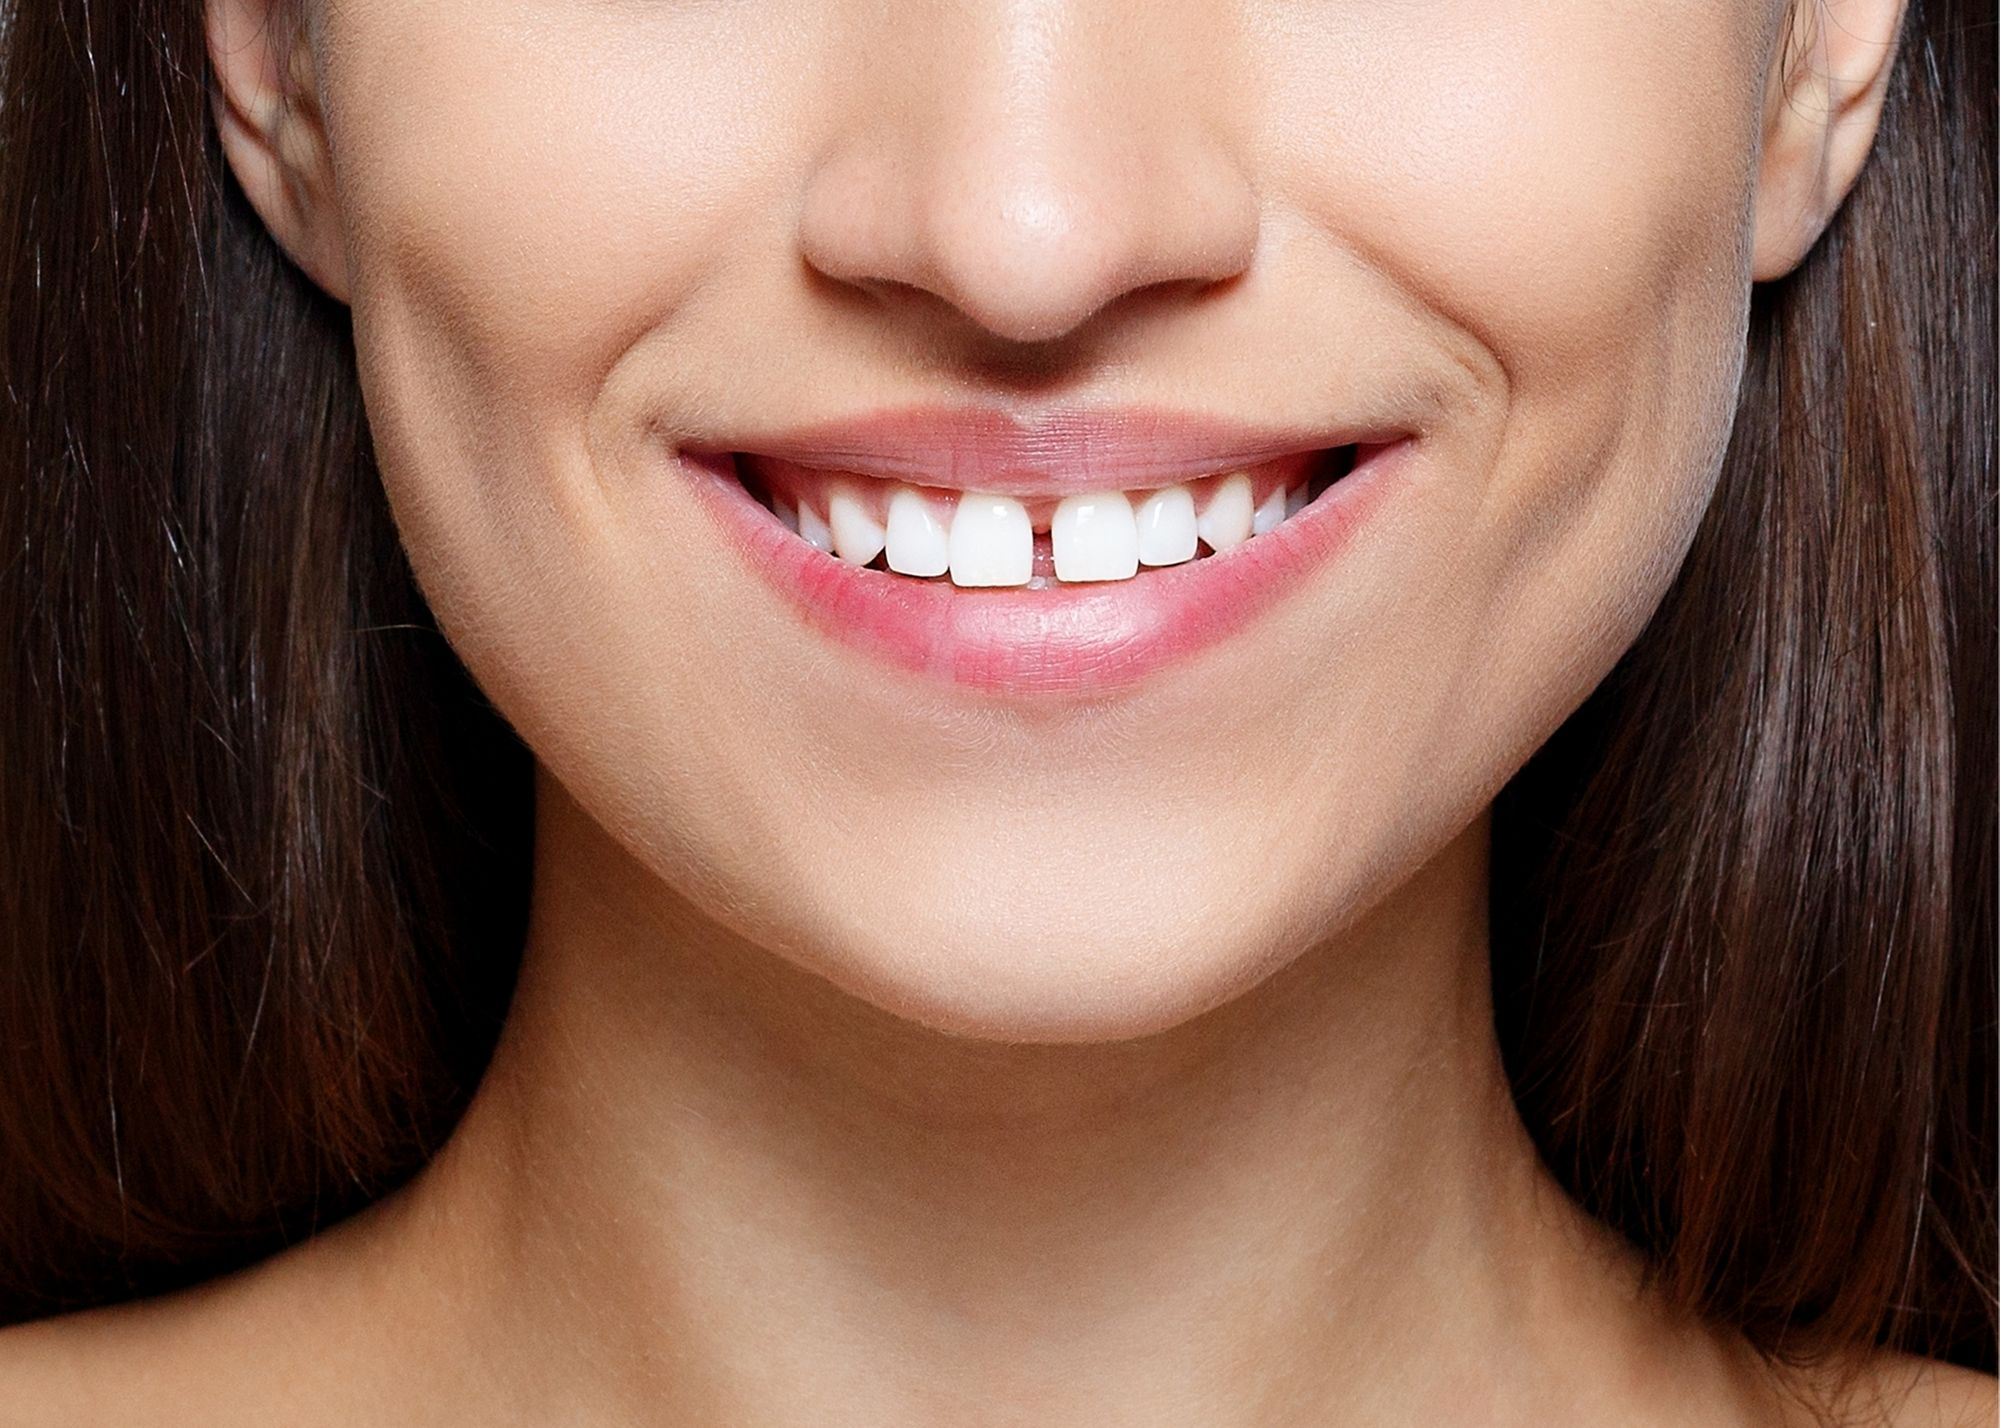 young lady have gap between teeth